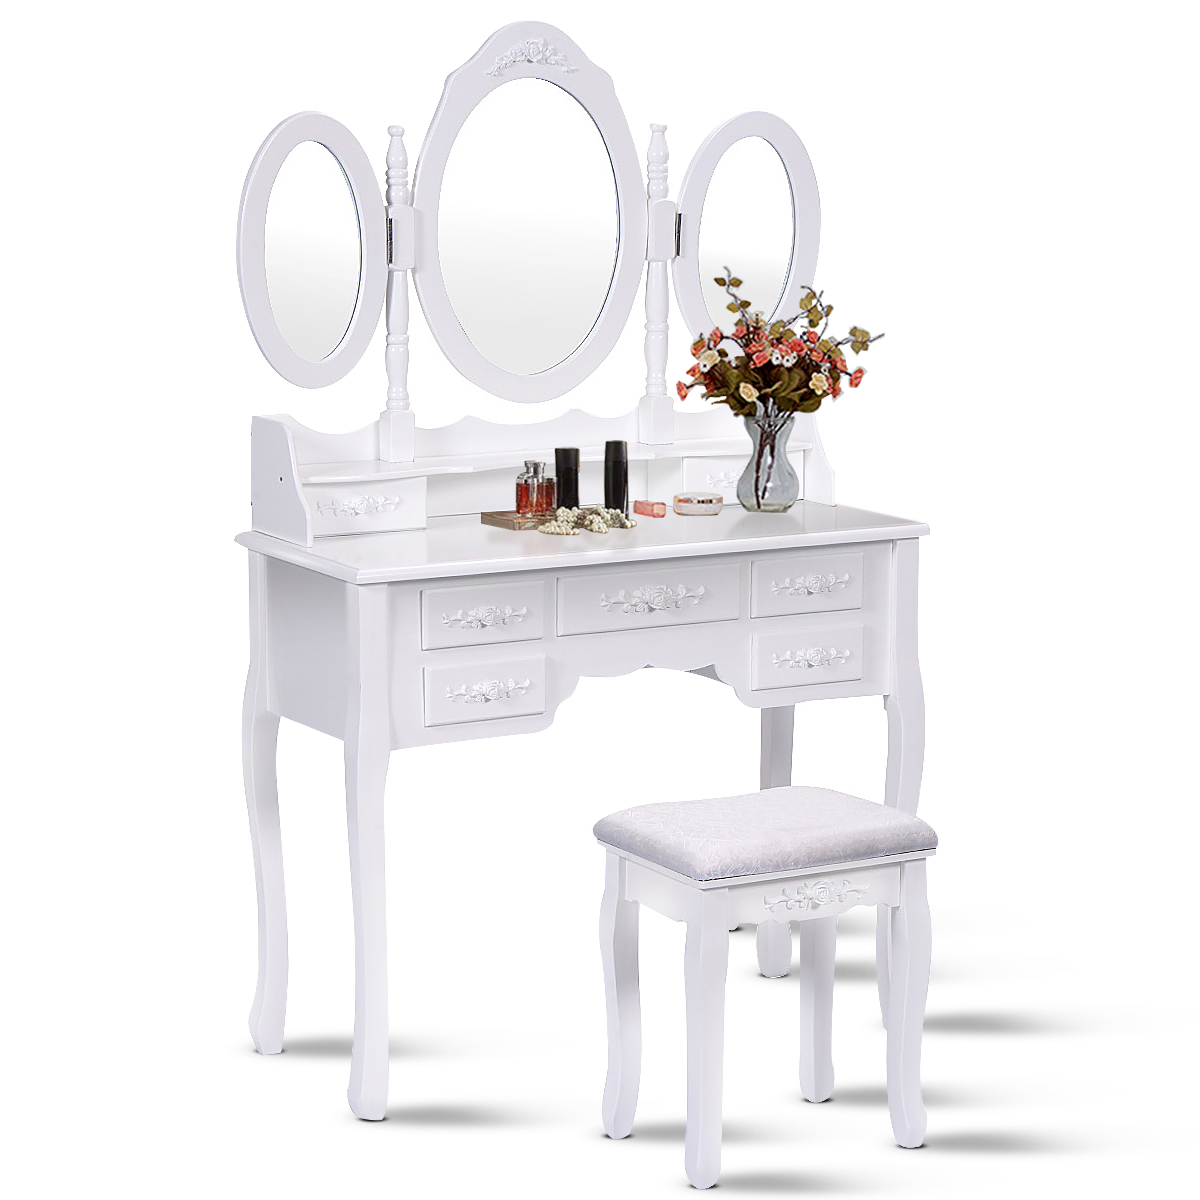 Costway White Tri Folding Oval Mirror Wood Vanity Makeup Table Set with Stool &7 Drawers bathroom by Costway